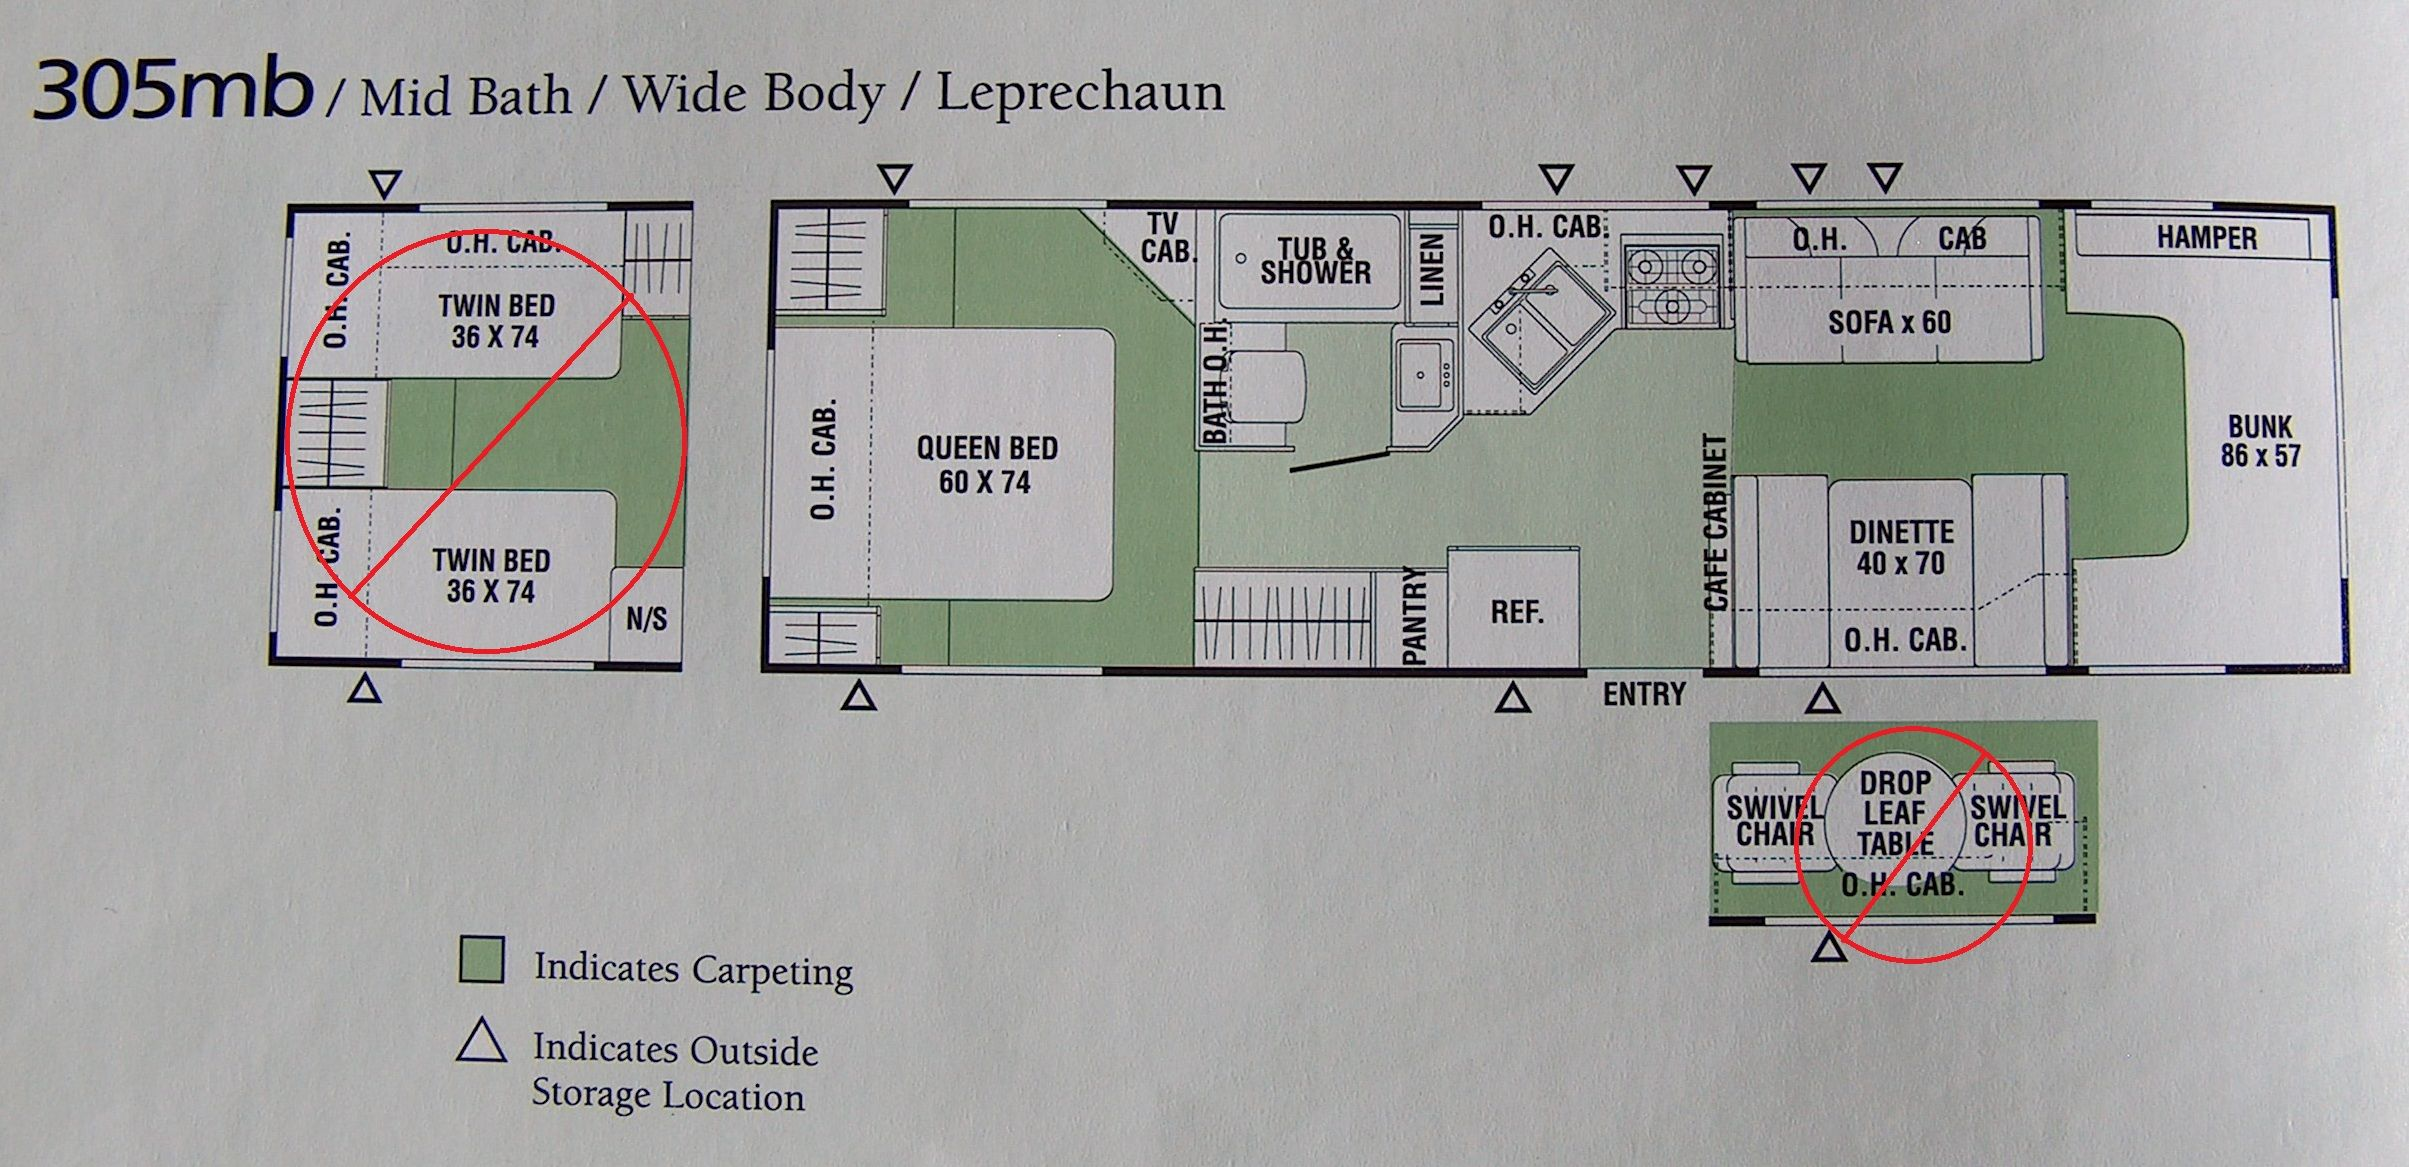 4f86c0a6b72217798ef96614c964d76c Coachmen Leprechaun Motorhome Floor Plans on jayco eagle floor plan, coachmen catalina floor plan, jayco jay flight floor plan, coachmen encounter floor plan, damon astoria floor plan, winnebago sightseer floor plan, fleetwood bounder floor plan, winnebago adventurer floor plan,